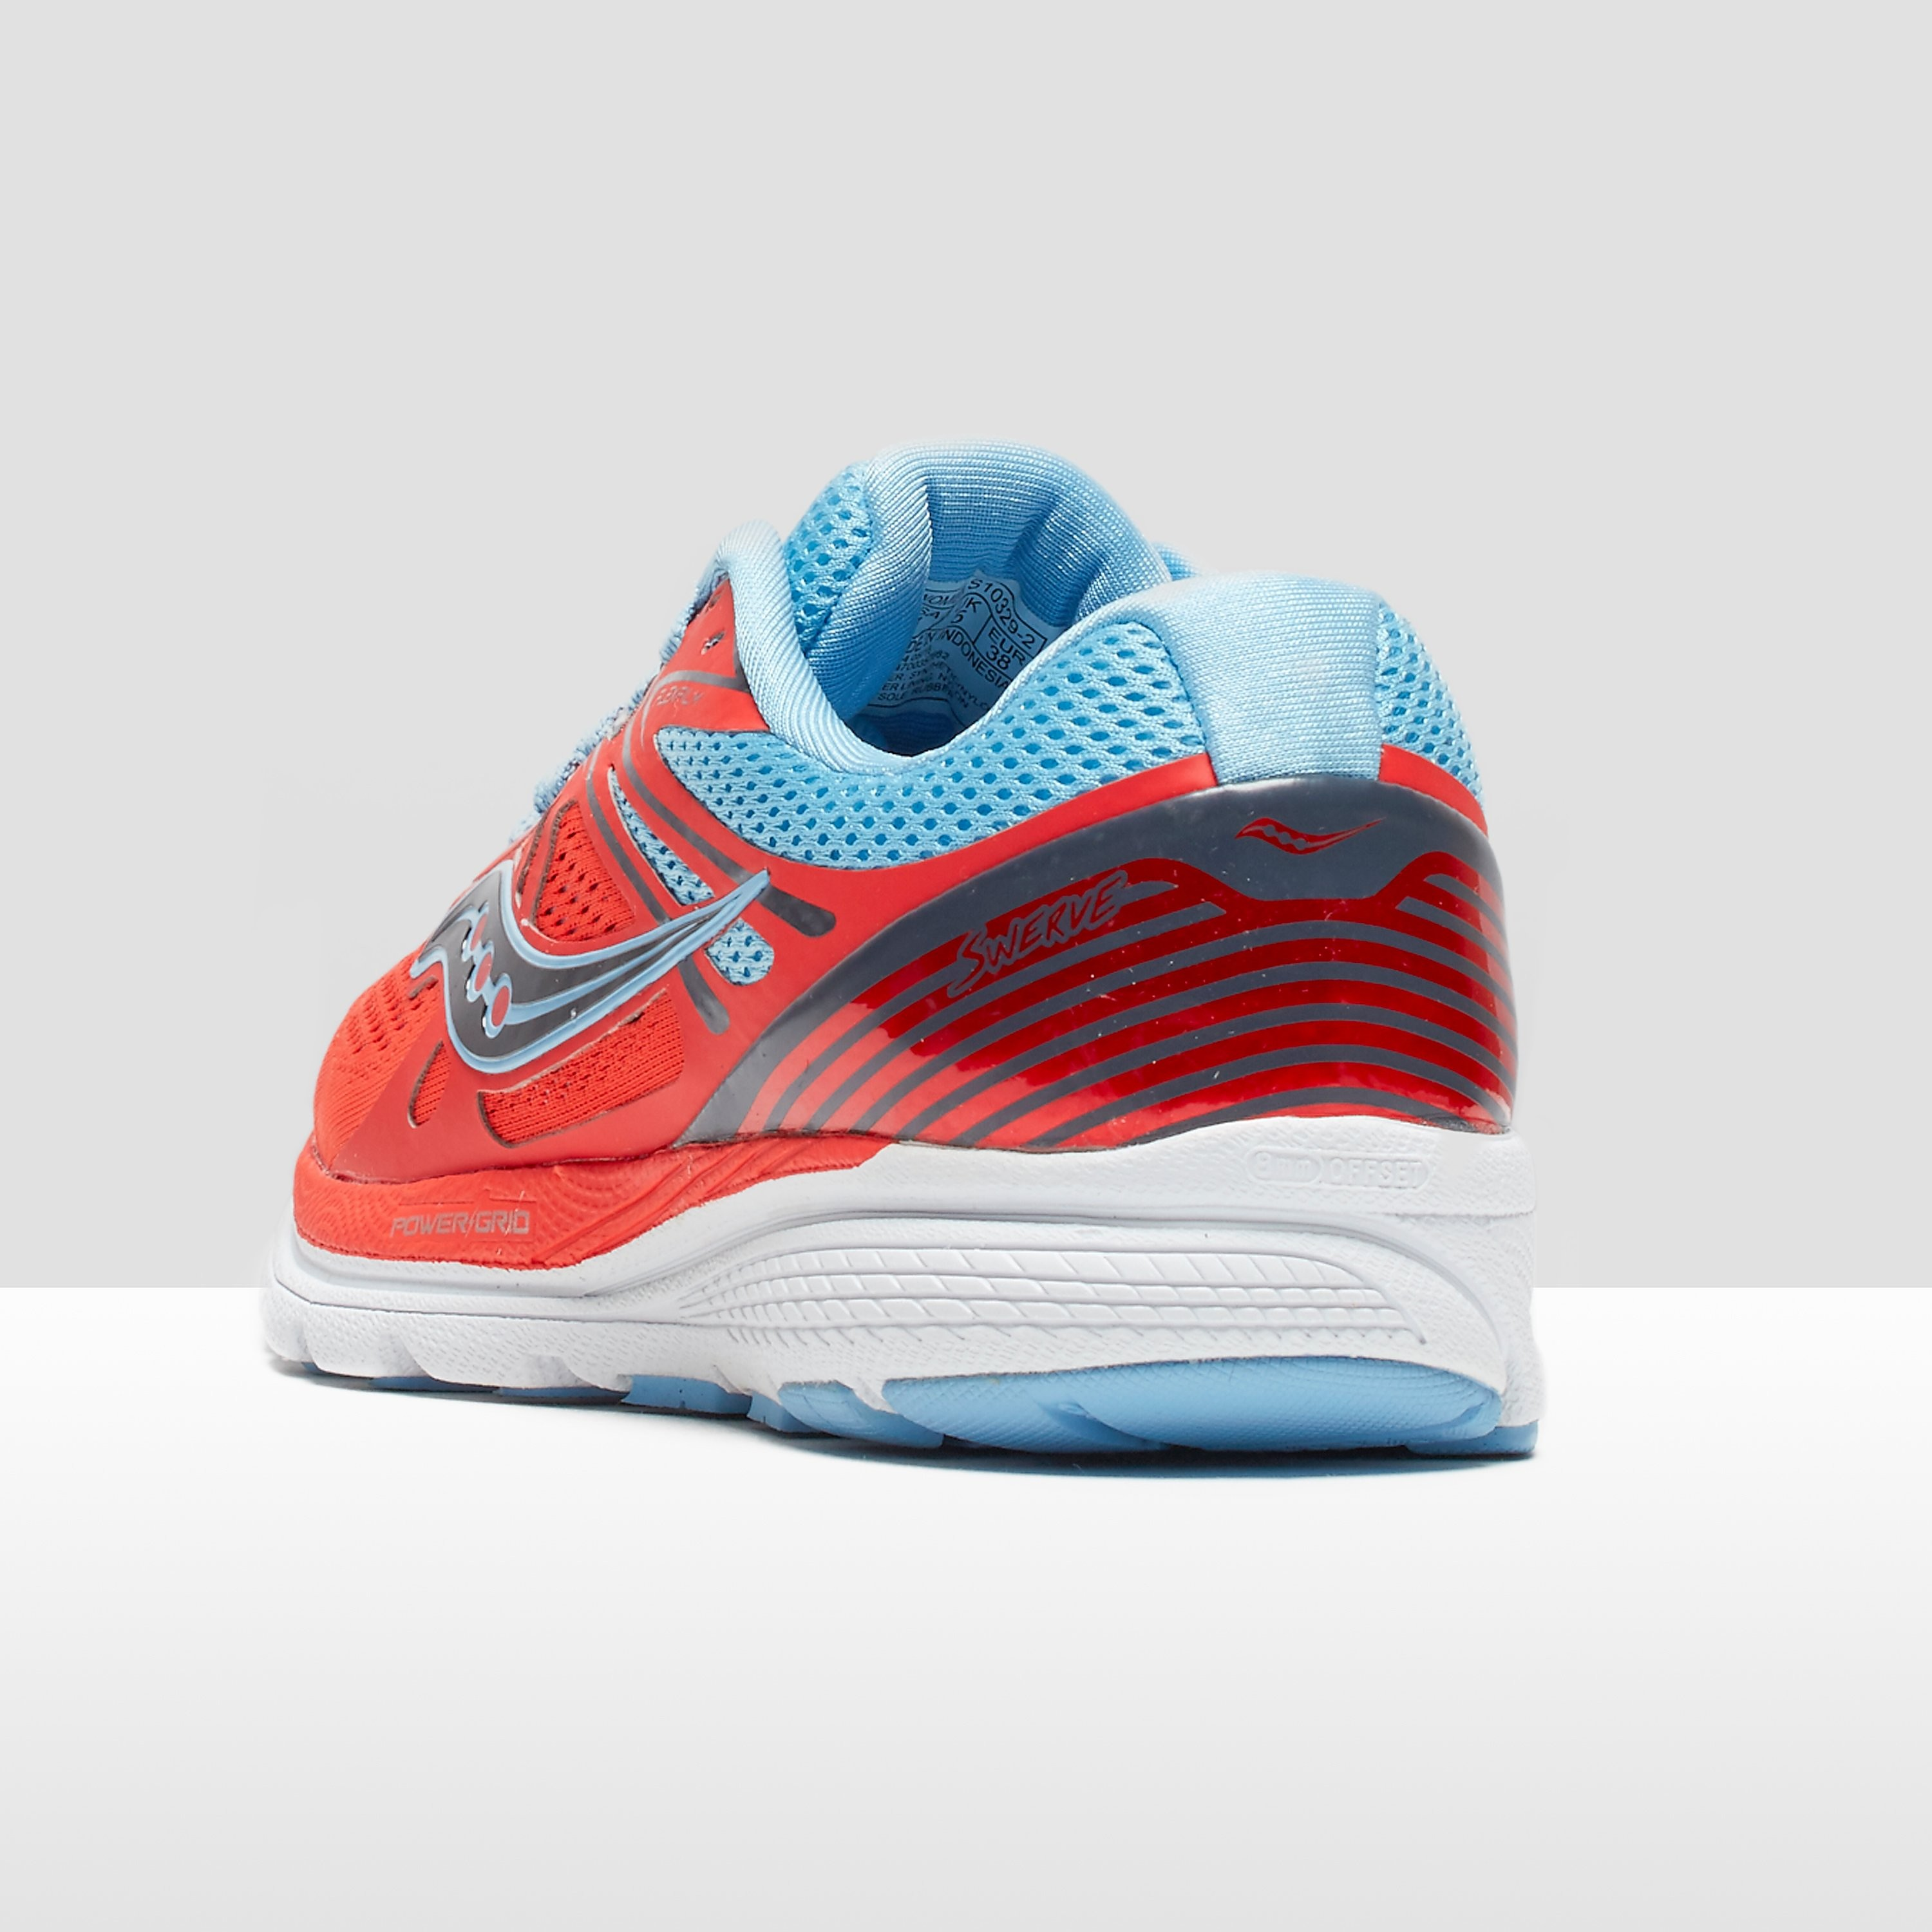 Saucony Women's Swerve Running Shoes